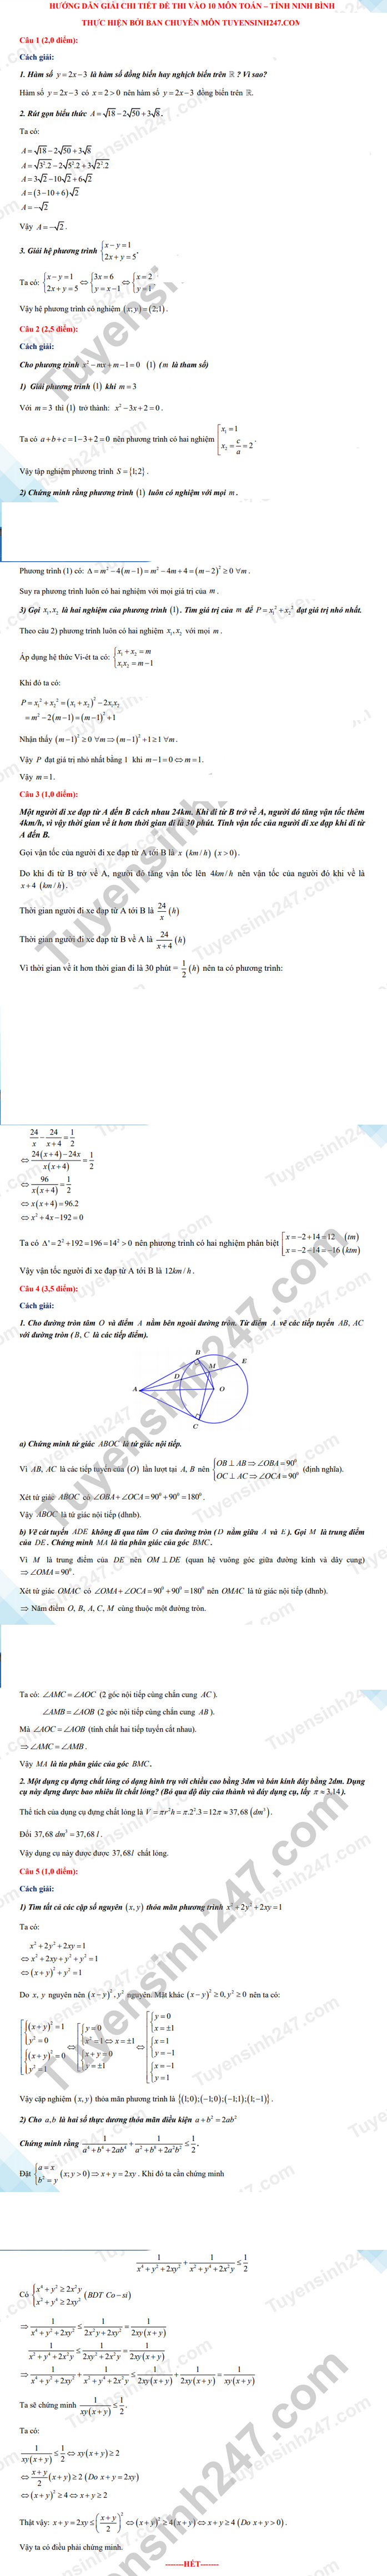 Answers to the math exam questions for the 10th grade exam in Ninh Binh province in 2021 1